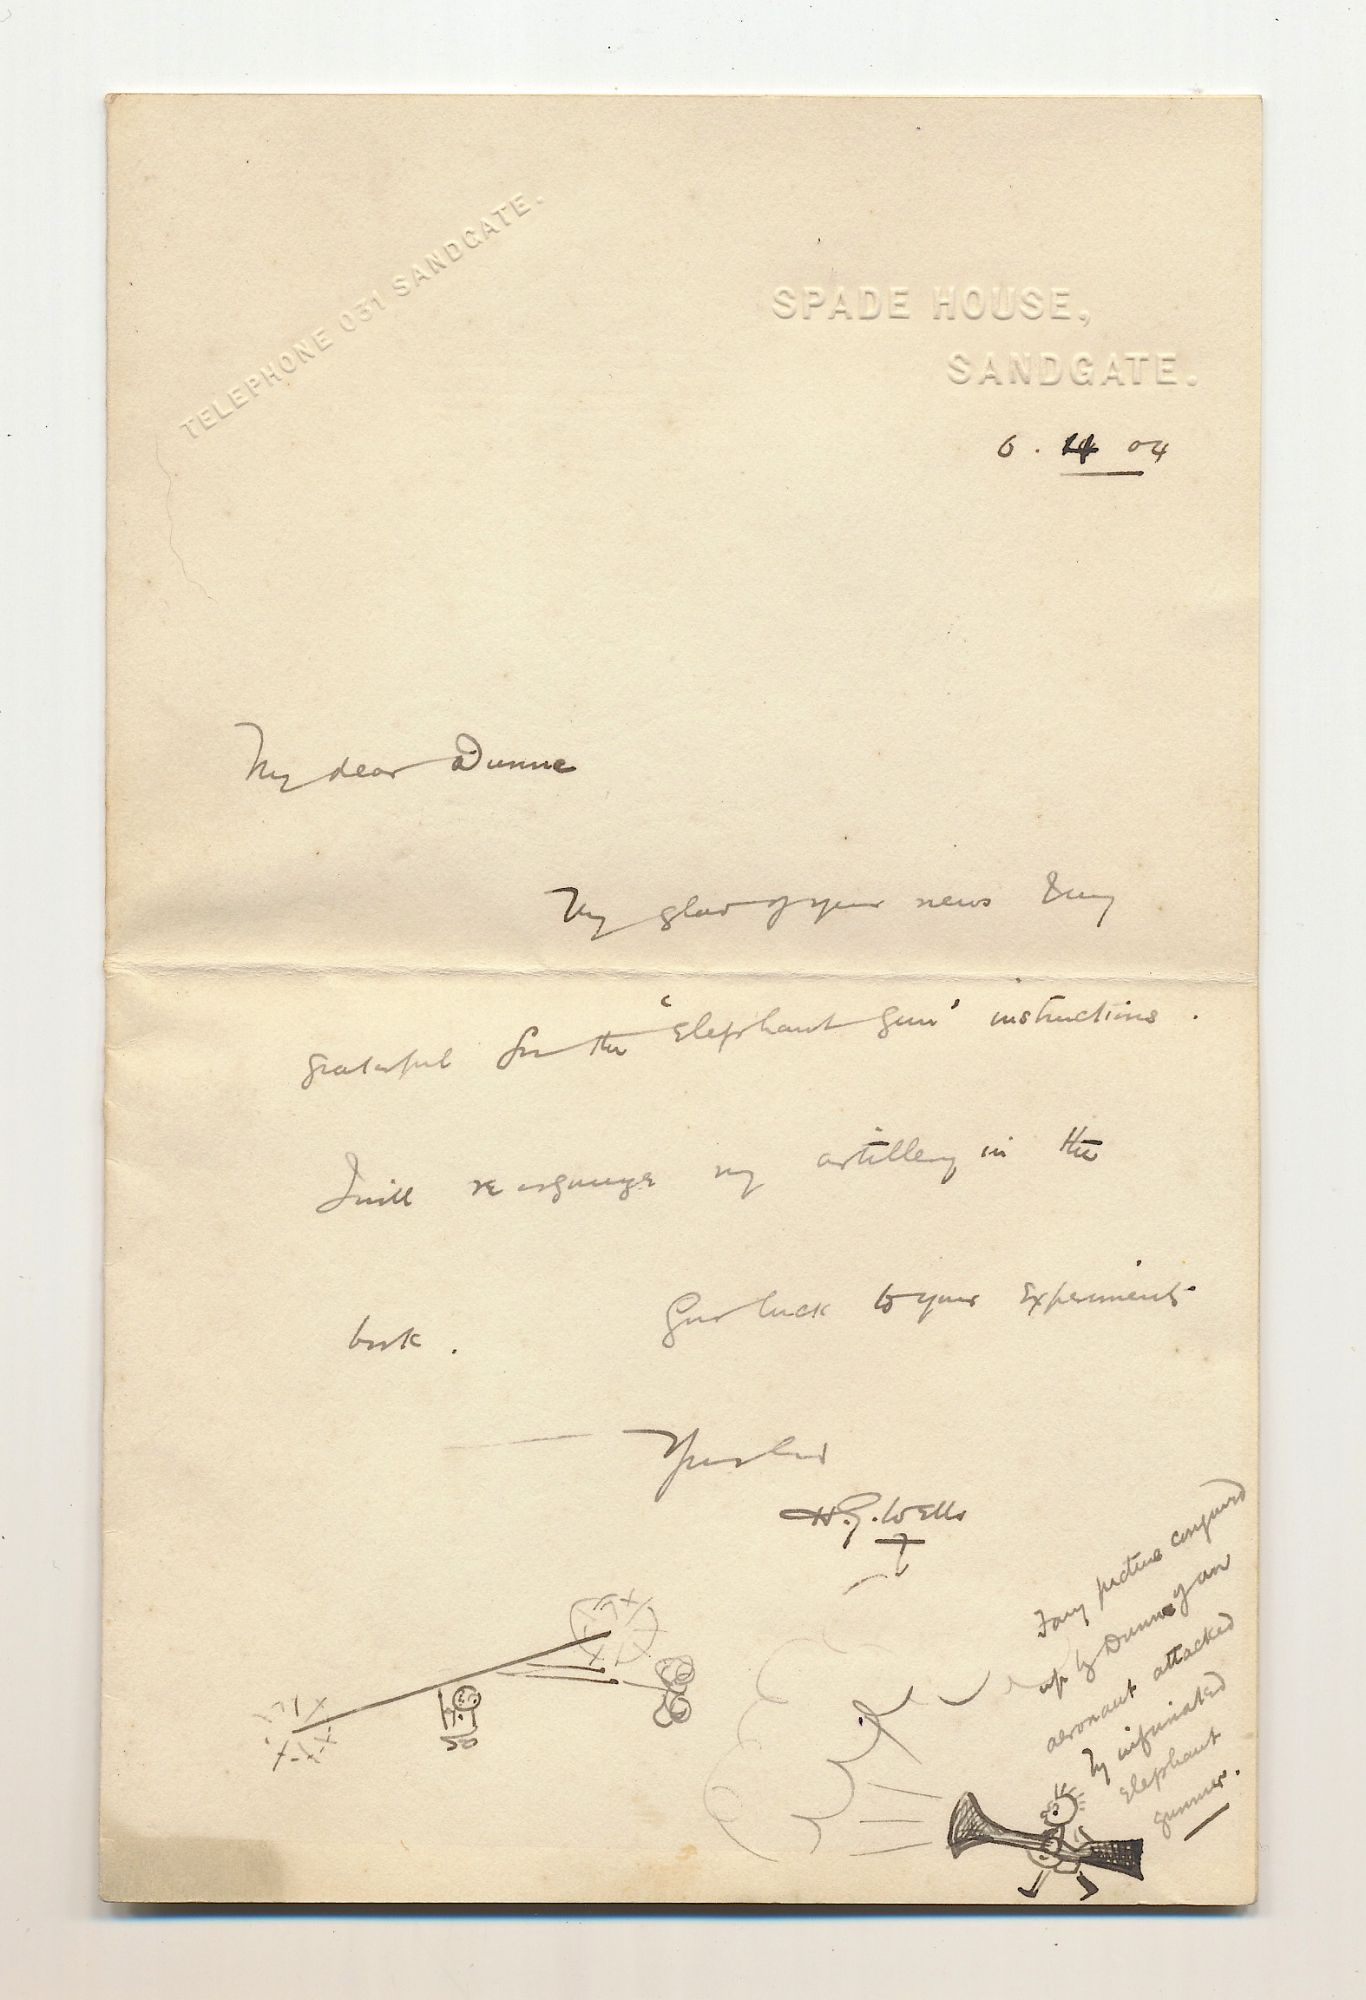 picture relating to Embossed Stationery referred to as Illustrated Autograph Letter Signed, upon blind embossed customized stationery, Sandgate, April 6, 1904 as a result of H. G. WELLS upon Schulson Autographs